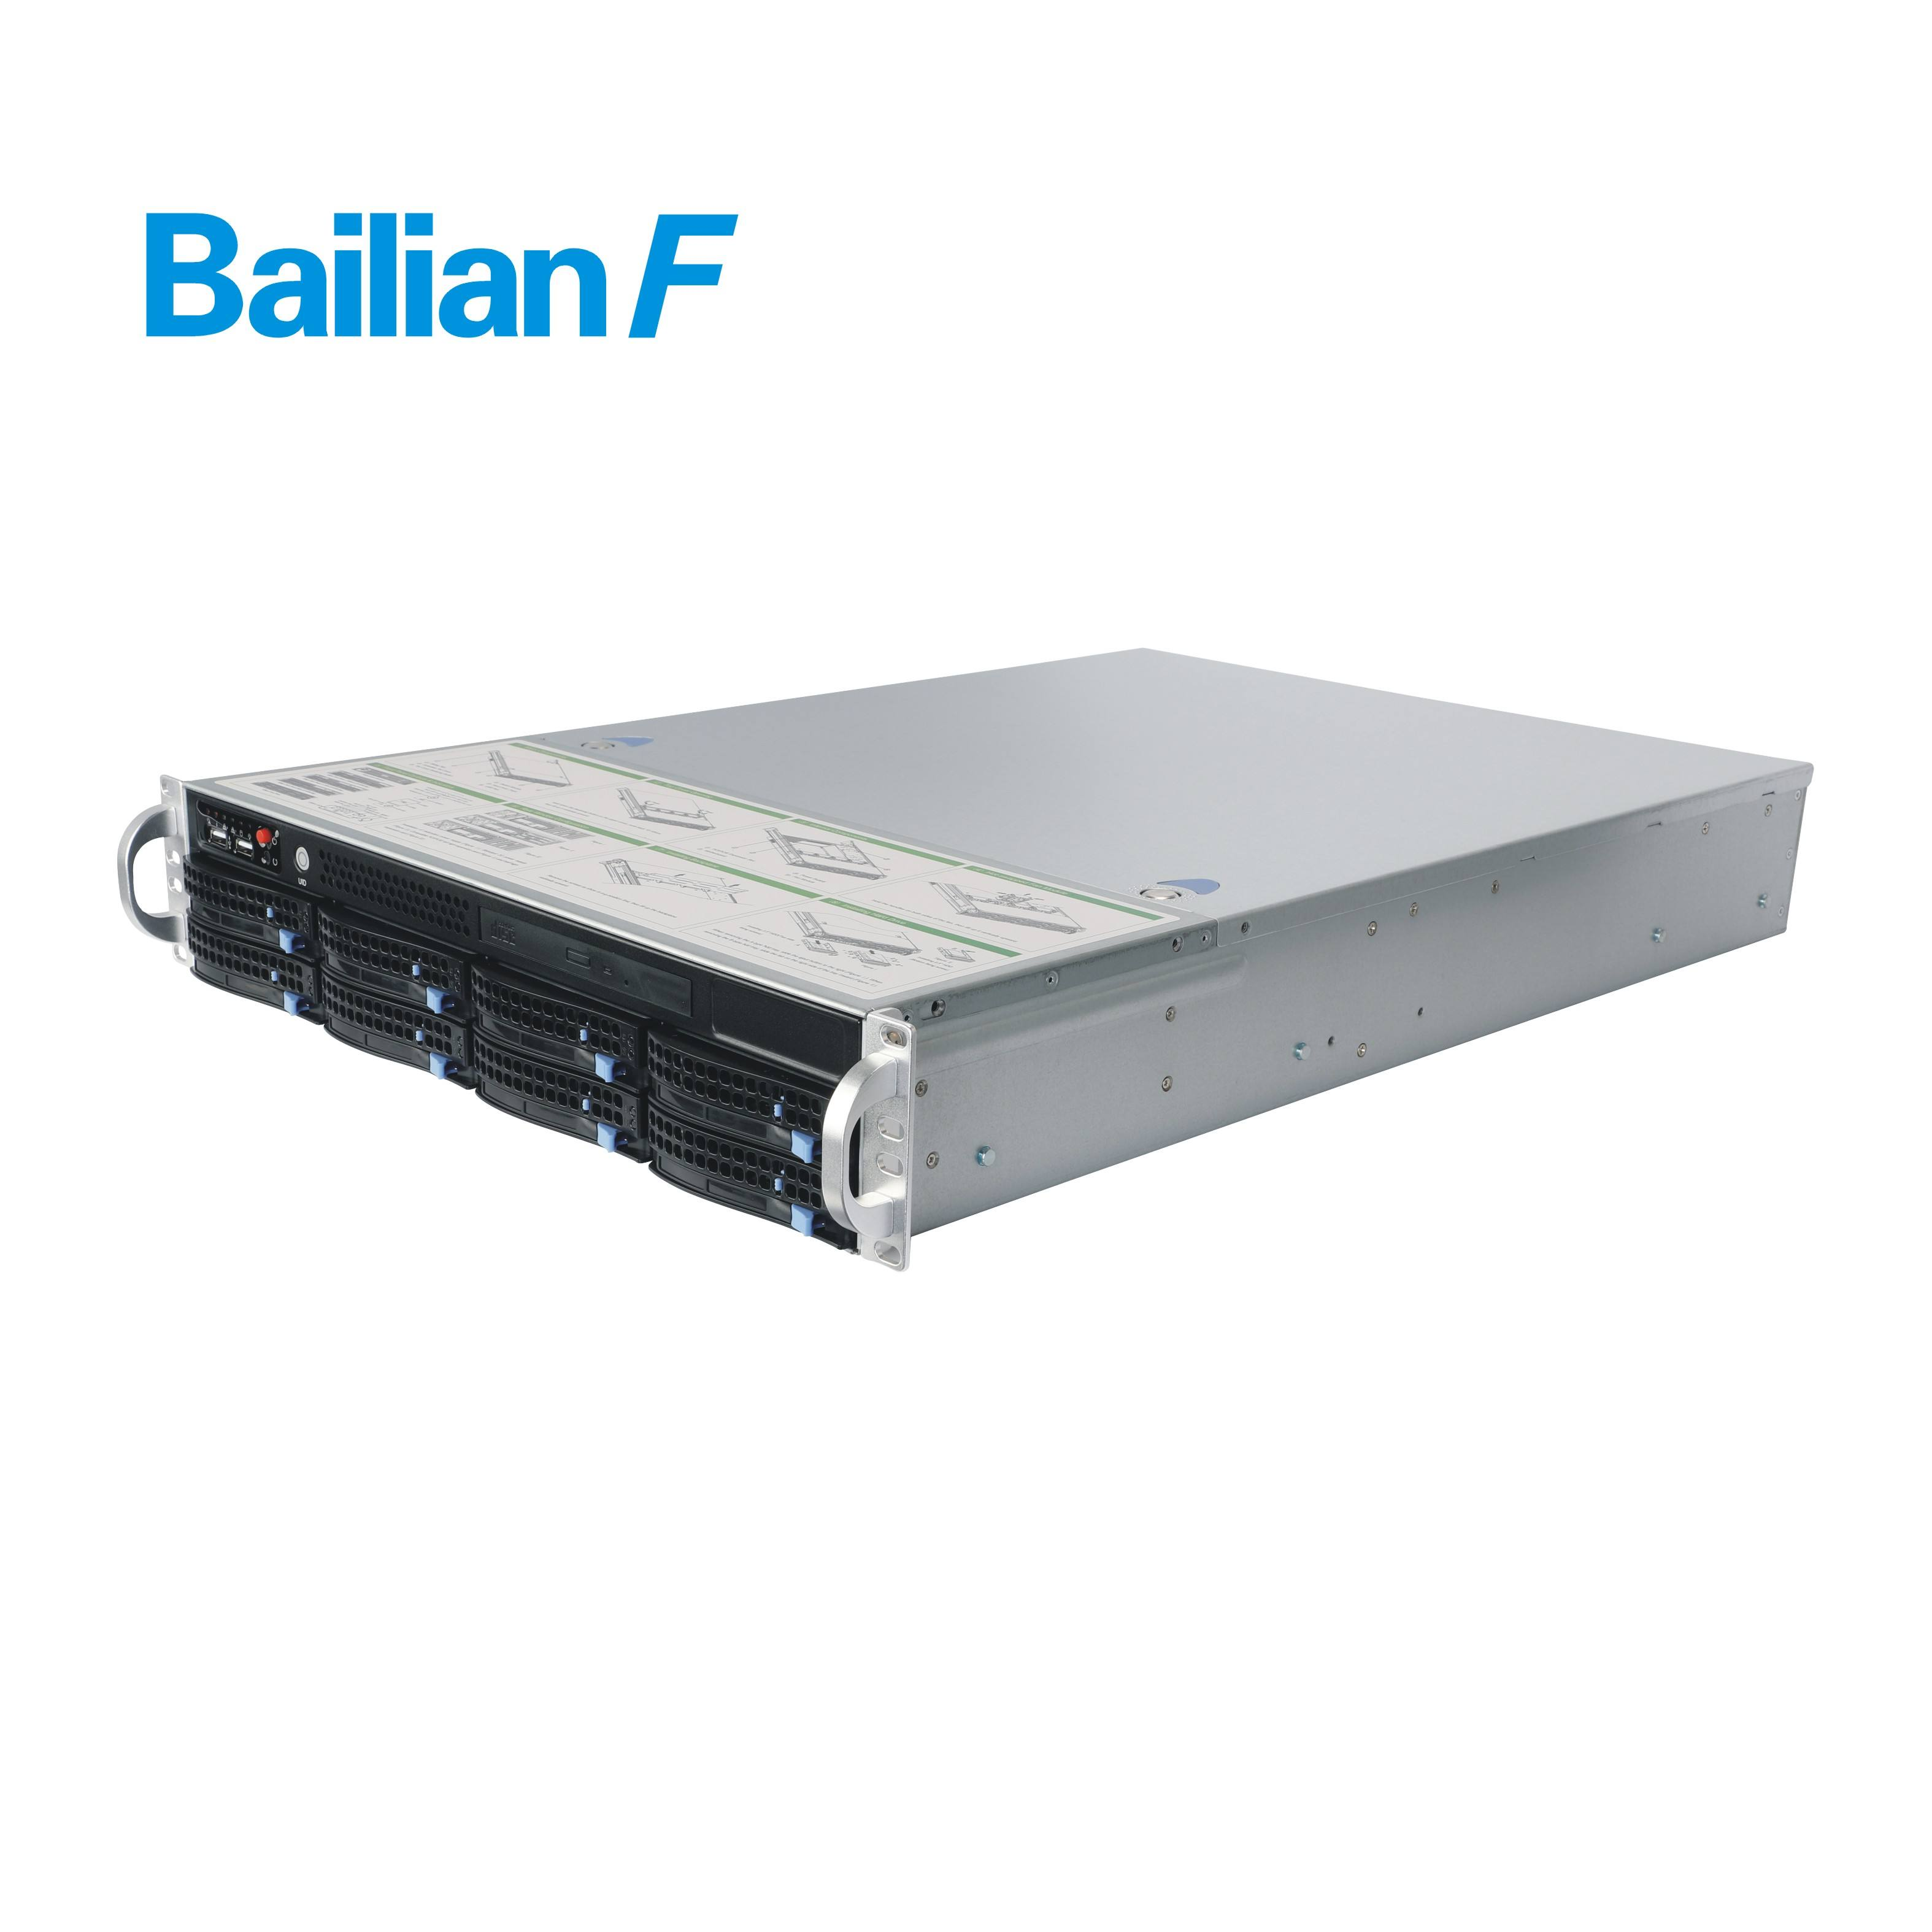 8 Bay Xeon E5 2670 Computing rack Server for Virtualization, private cloud, diskless teaching system